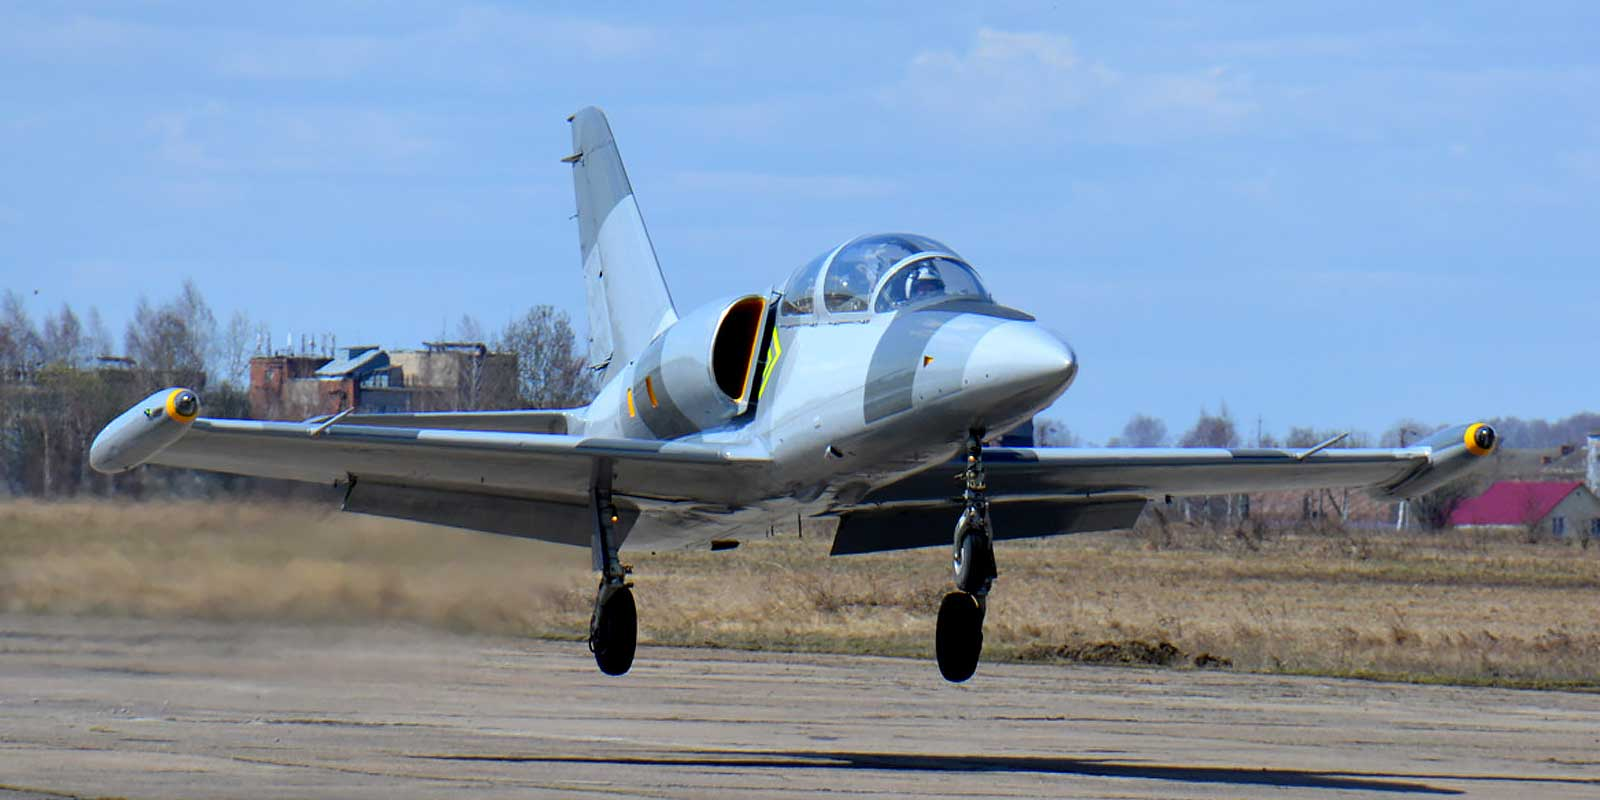 Fly an L-39 Albatros Fighter Jet in Russia